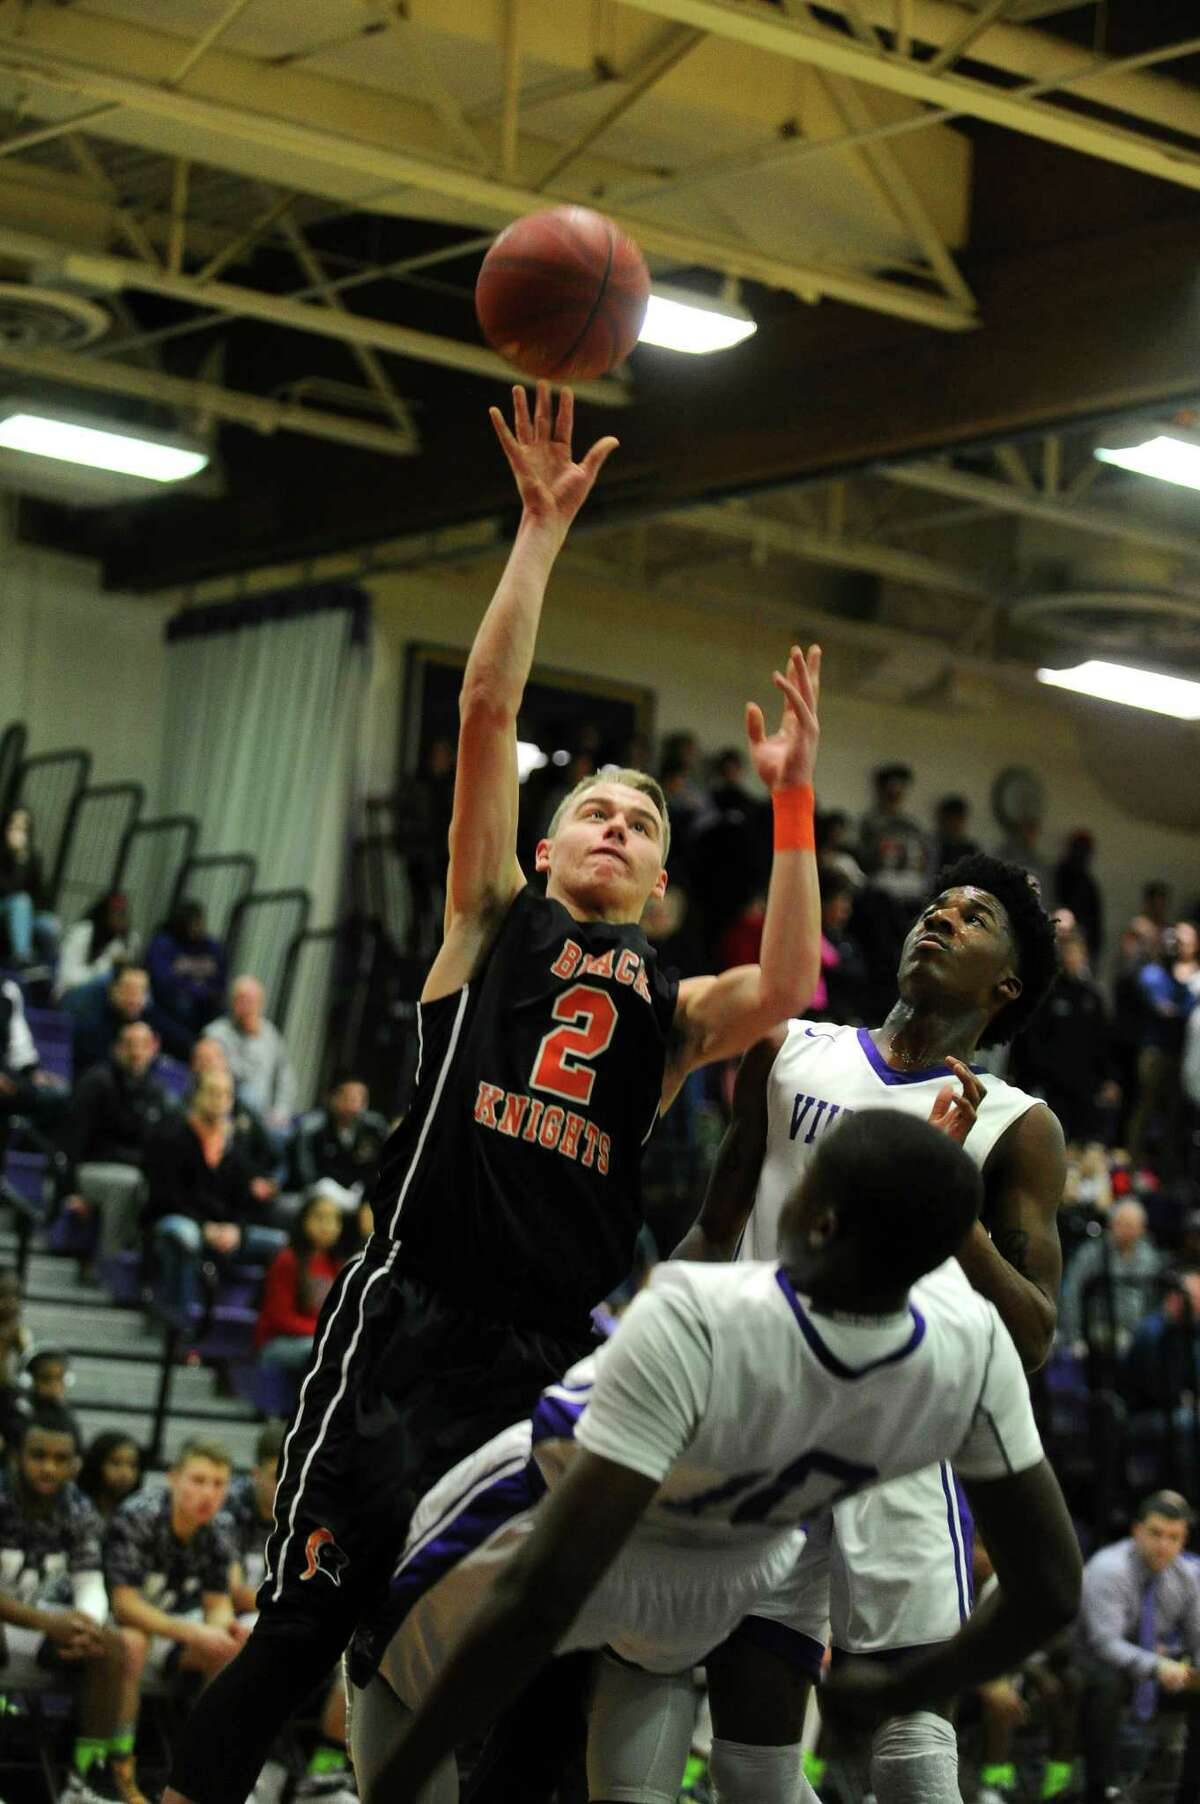 Stamford High senior Jay DeVito lofts a ball over Westhill's Tyrell Alexander during the second quarter of the game at Westhill High School on Monday, Feb. 1, 2016. DeVito was called for a charge.